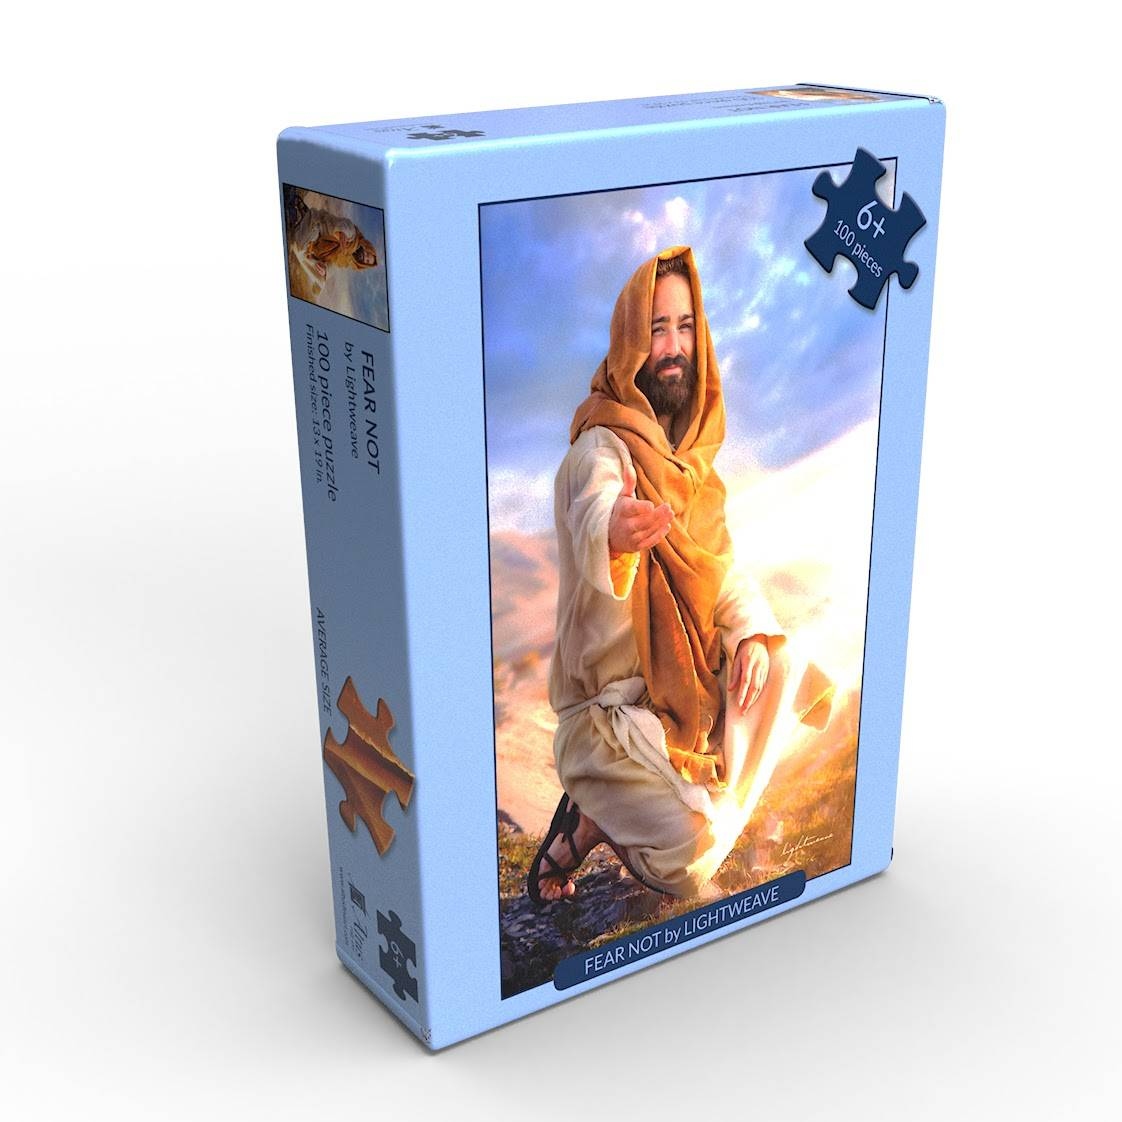 Christian 100 piece puzzle of Jesus reaching out a hand.